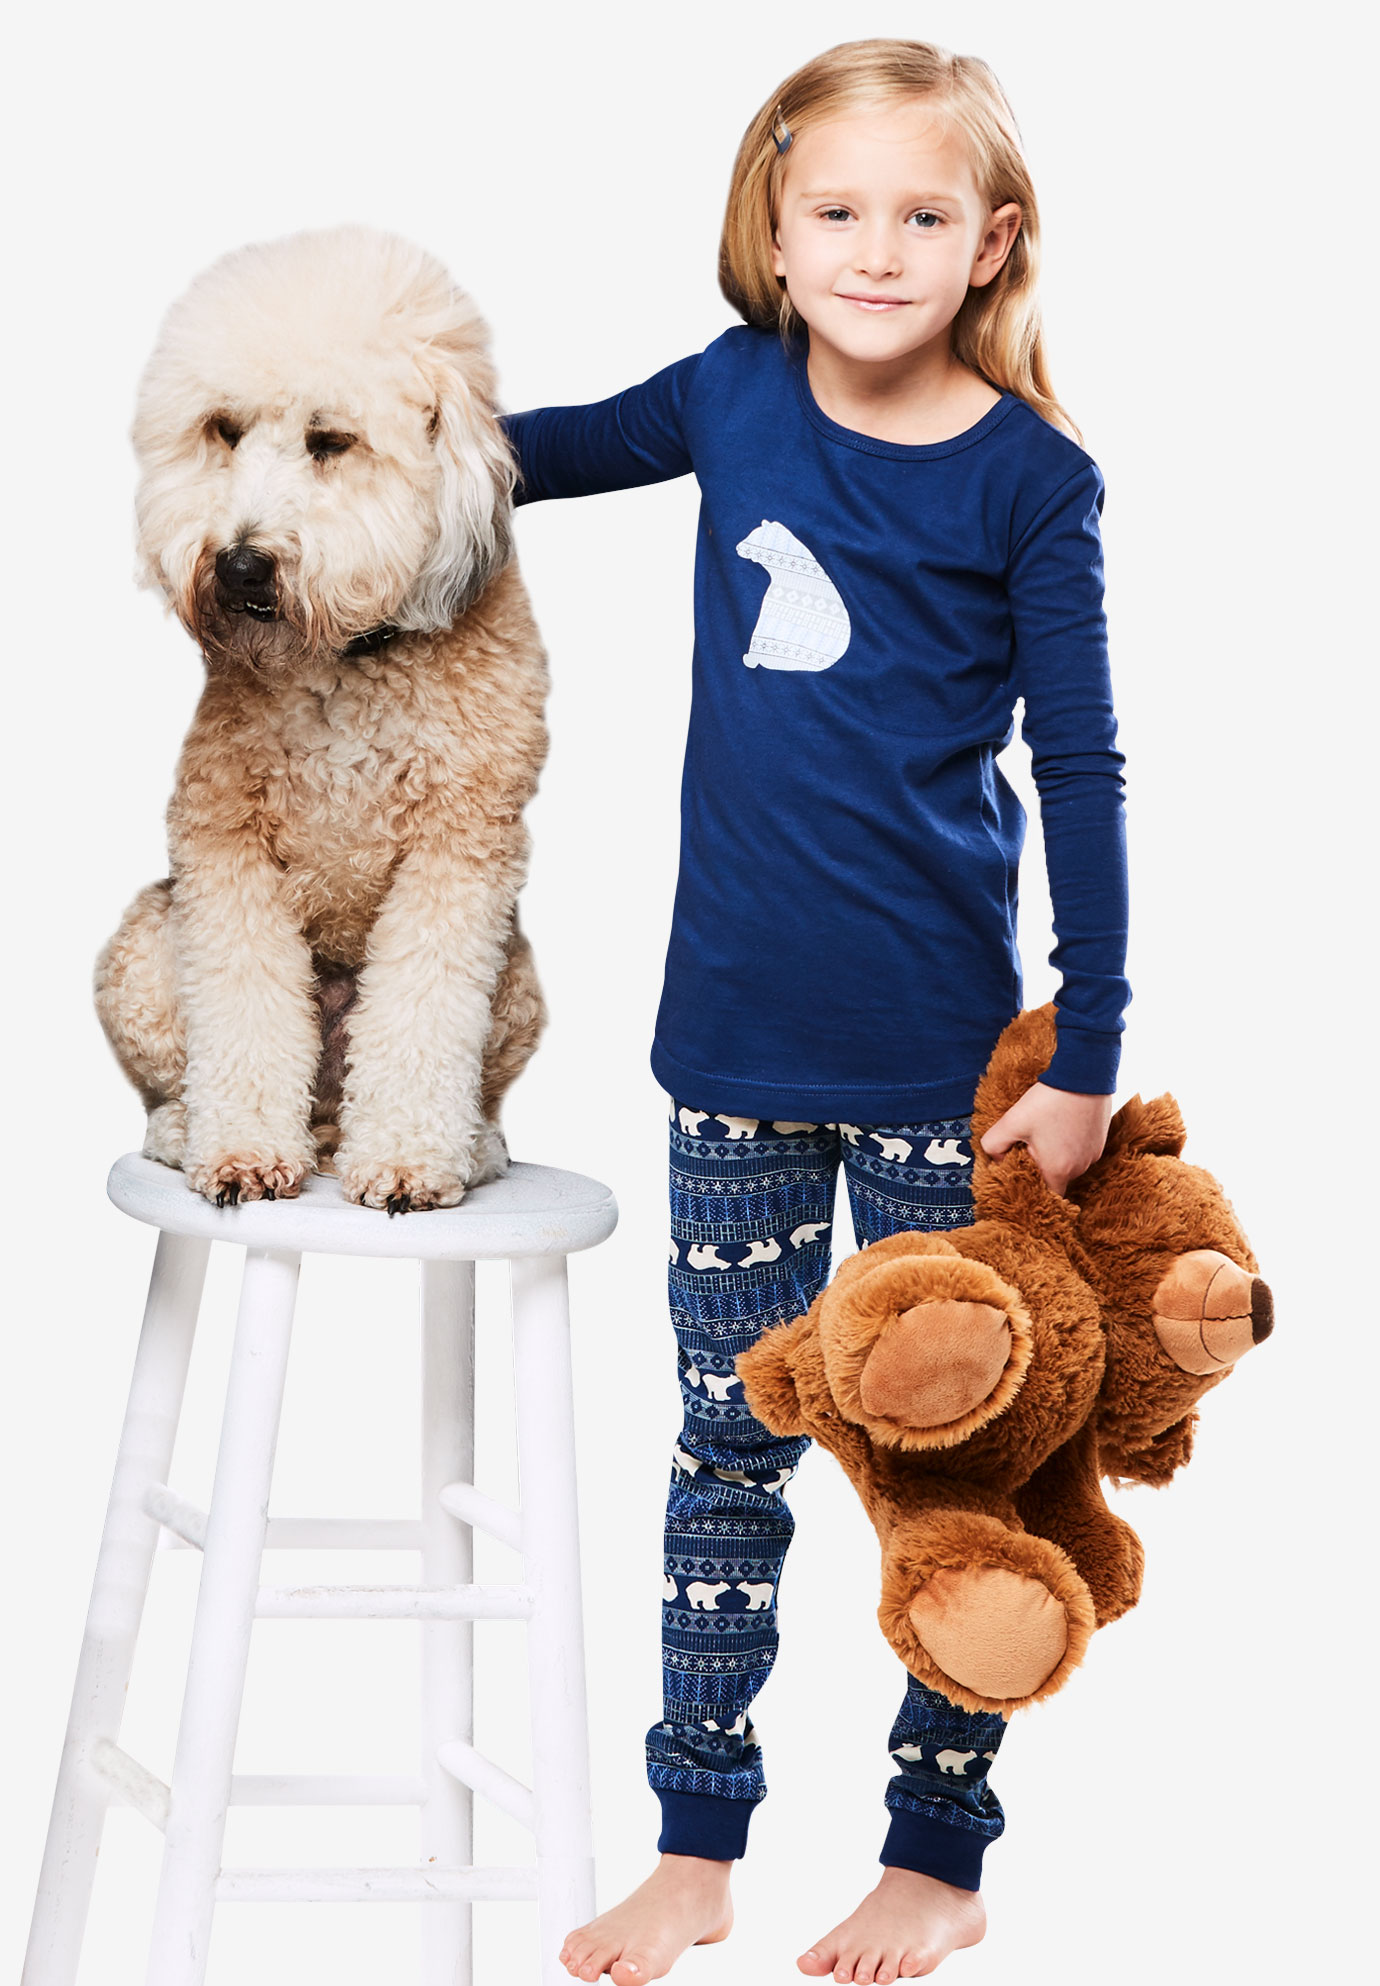 2-Piece Child's Unisex Holiday PJ Set by Dreams & Co.®, NAVY BLUE POLAR BEAR, hi-res